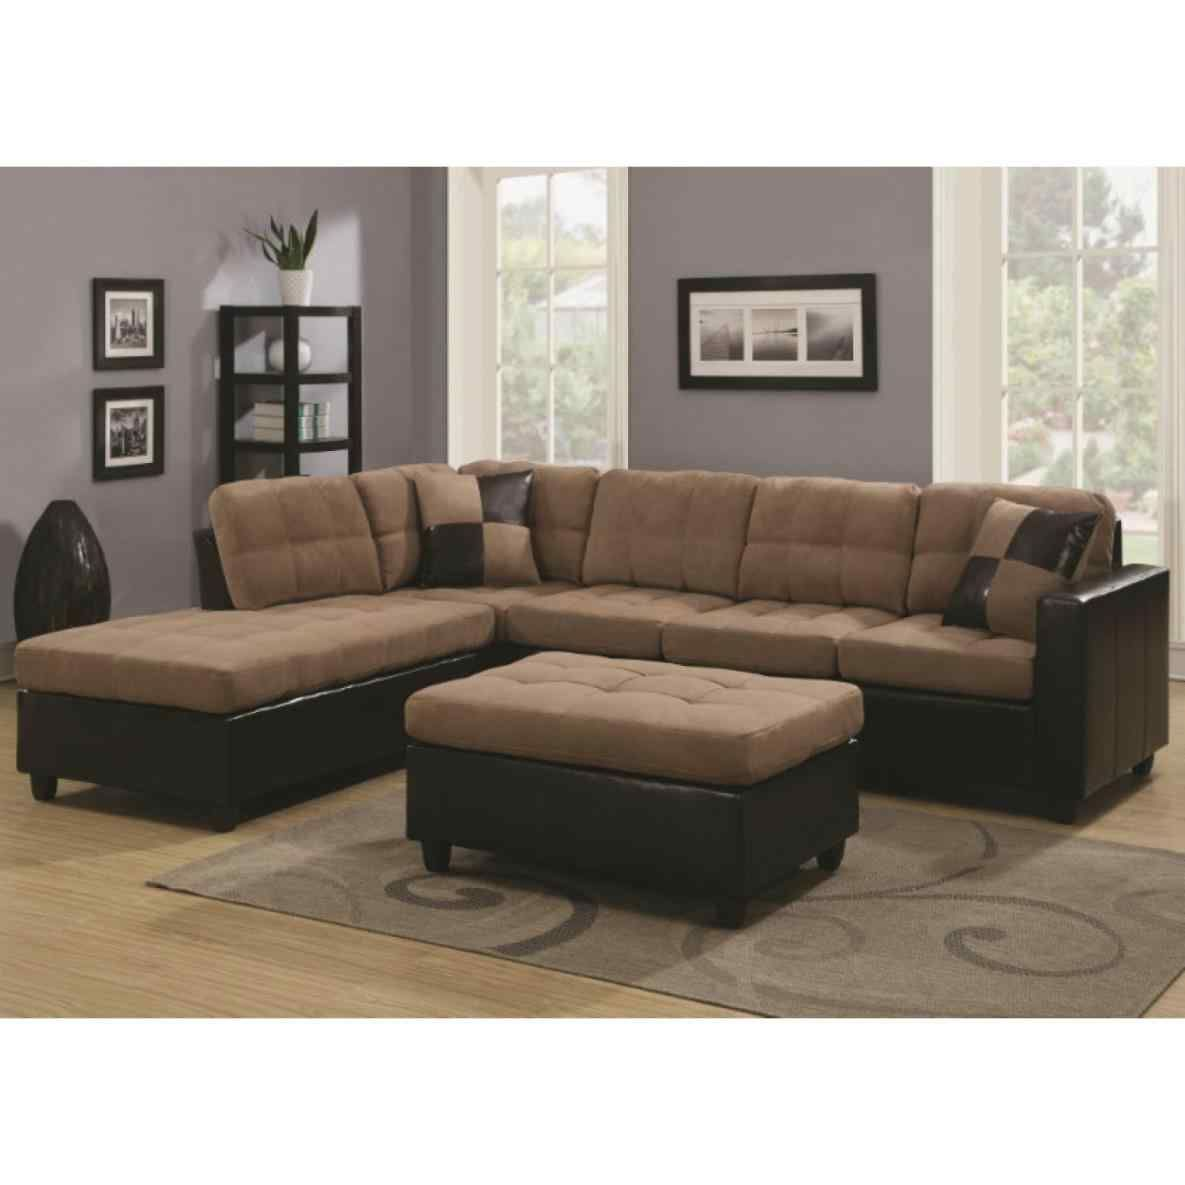 Roselawnlutheran For Nice Cheap Sectional Sofas Sale Roselawnlutheran L Shaped Sleeper Sofa U In Microfiber Sectional Sofa Upholstered Sectional Sectional Sofa